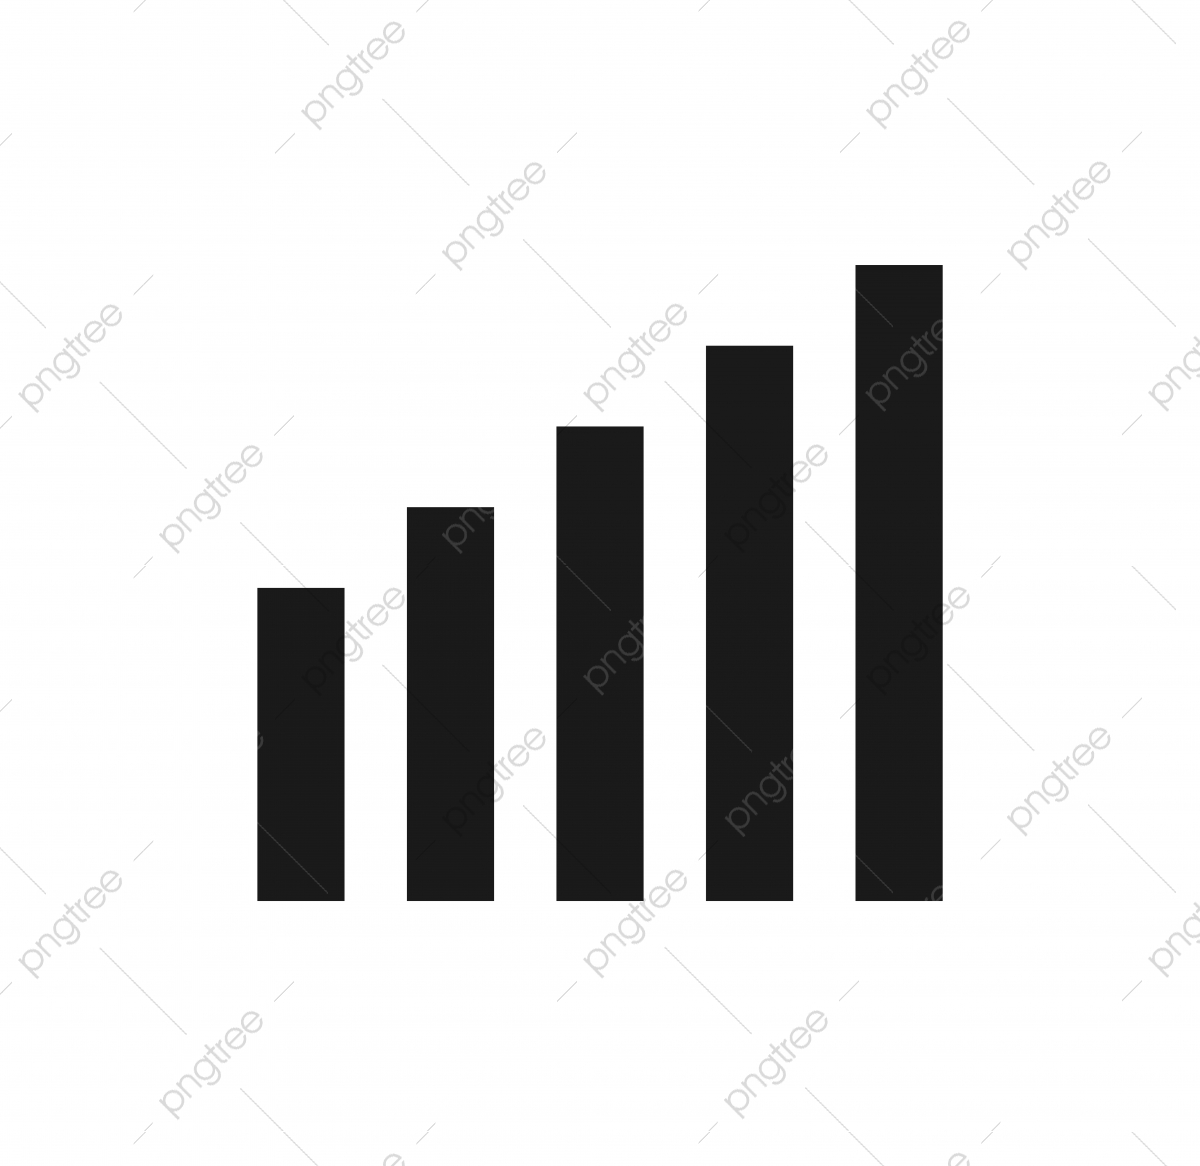 signal bar icon vector fine signal wifi signal strength stock vector eps10 wifi icons strength icons signal icons png and vector with transparent background for free download https pngtree com freepng signal bar icon vector fine signal wifi signal strength stock vector eps10 5221272 html